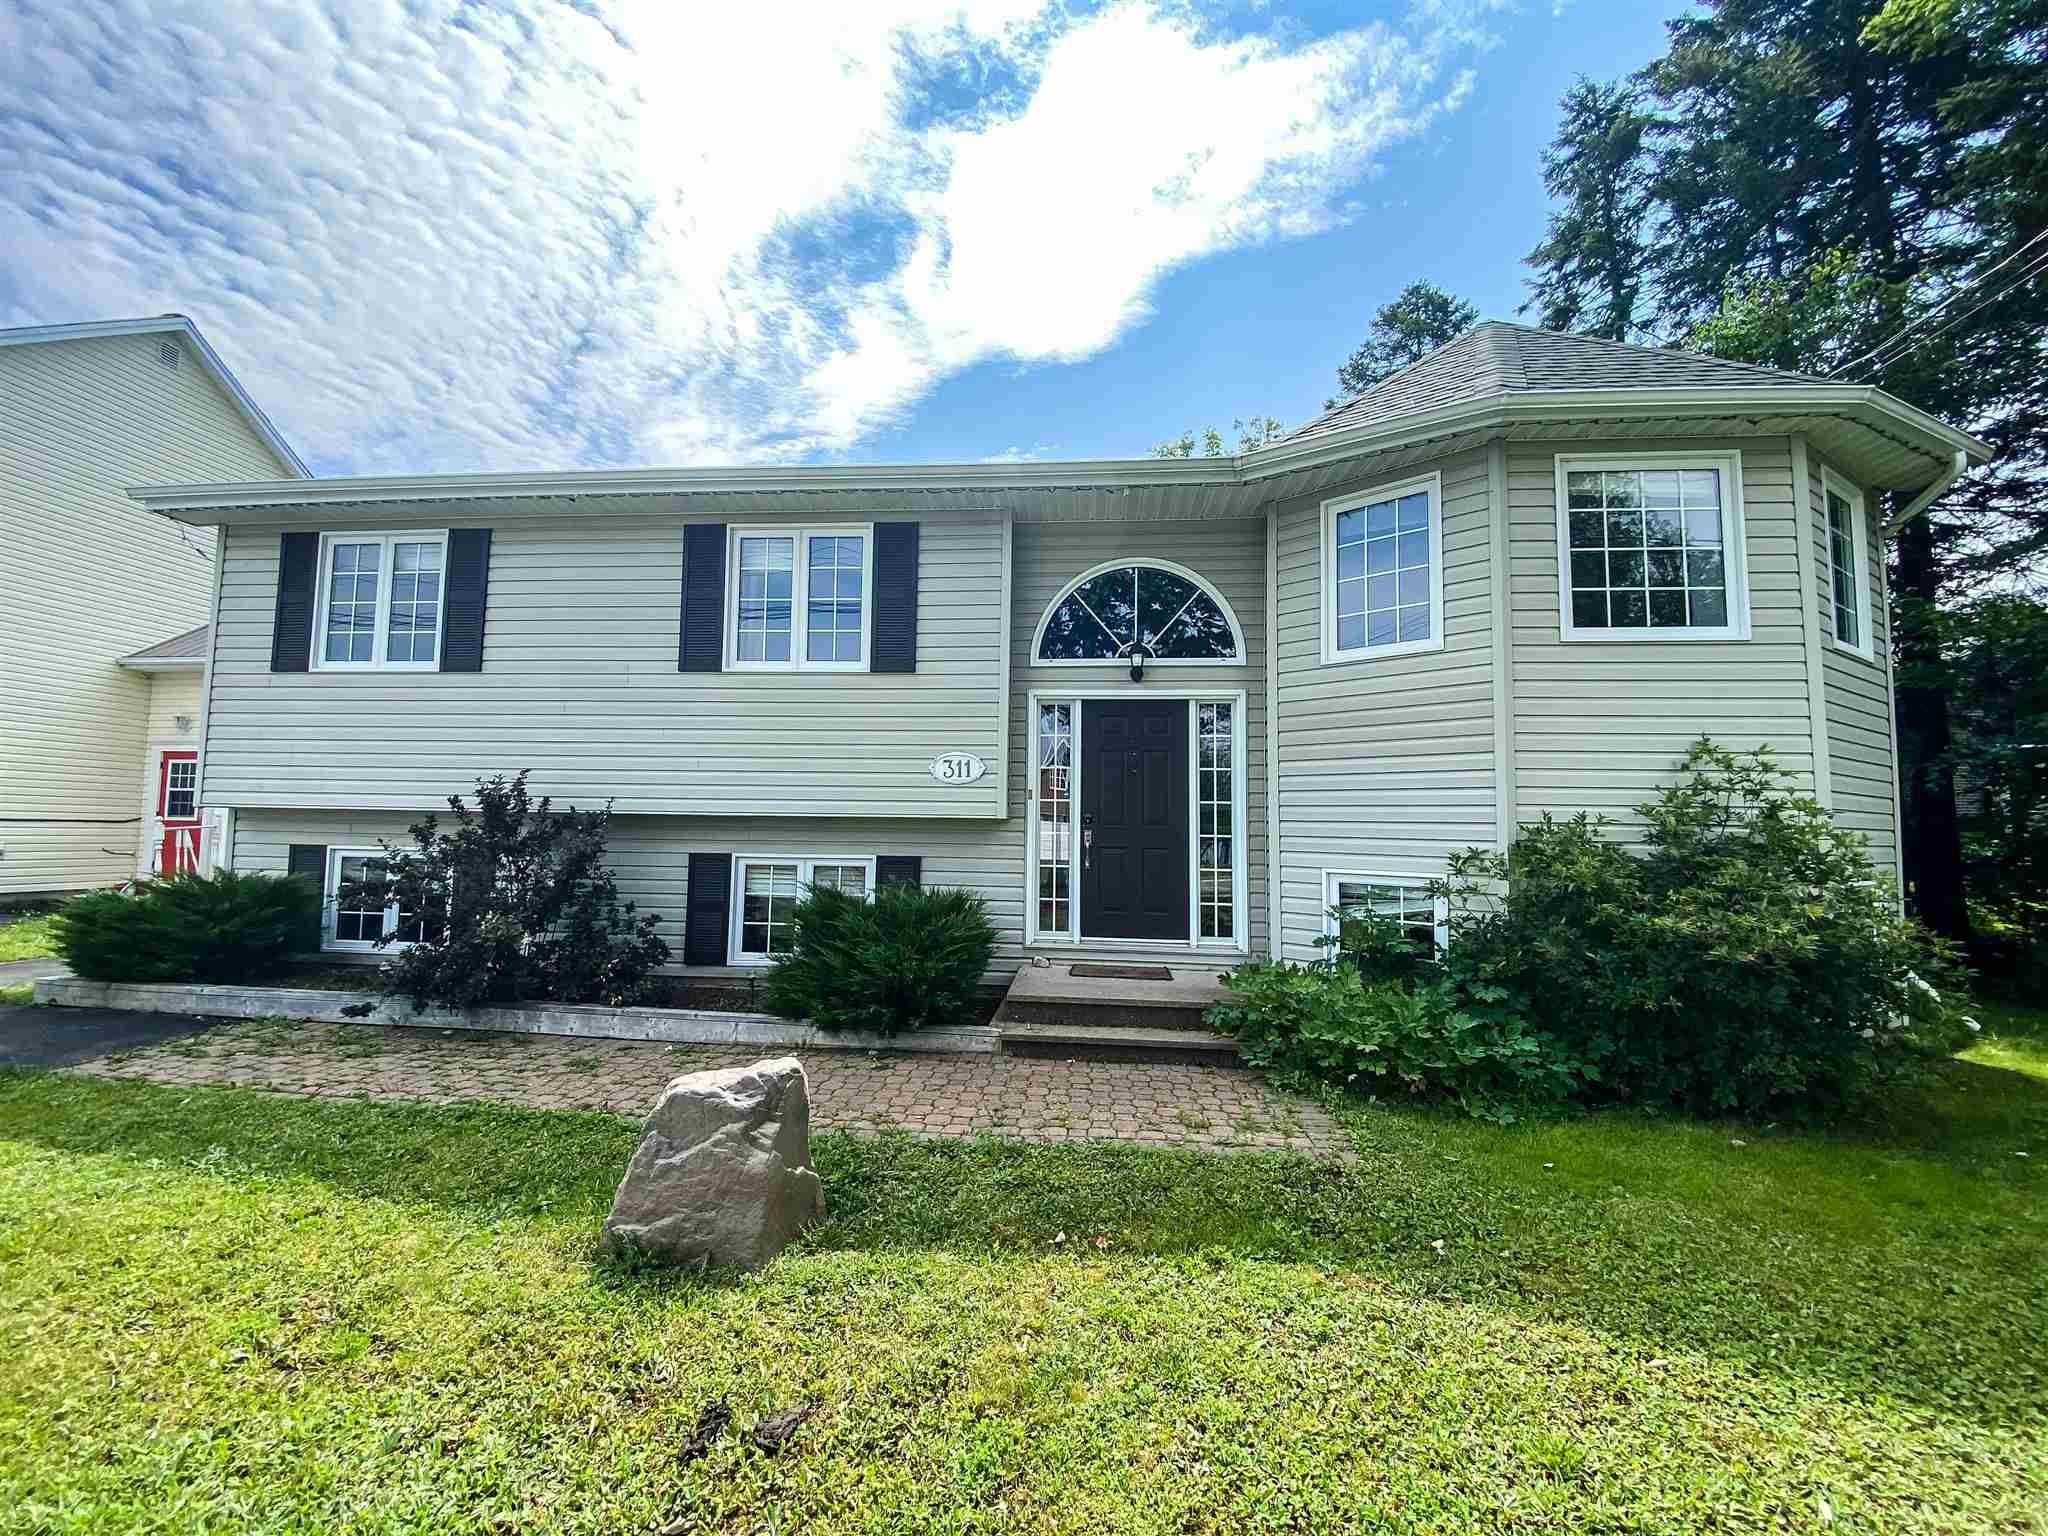 Main Photo: 311 Springfield Lake Road in Middle Sackville: 26-Beaverbank, Upper Sackville Residential for sale (Halifax-Dartmouth)  : MLS®# 202118252